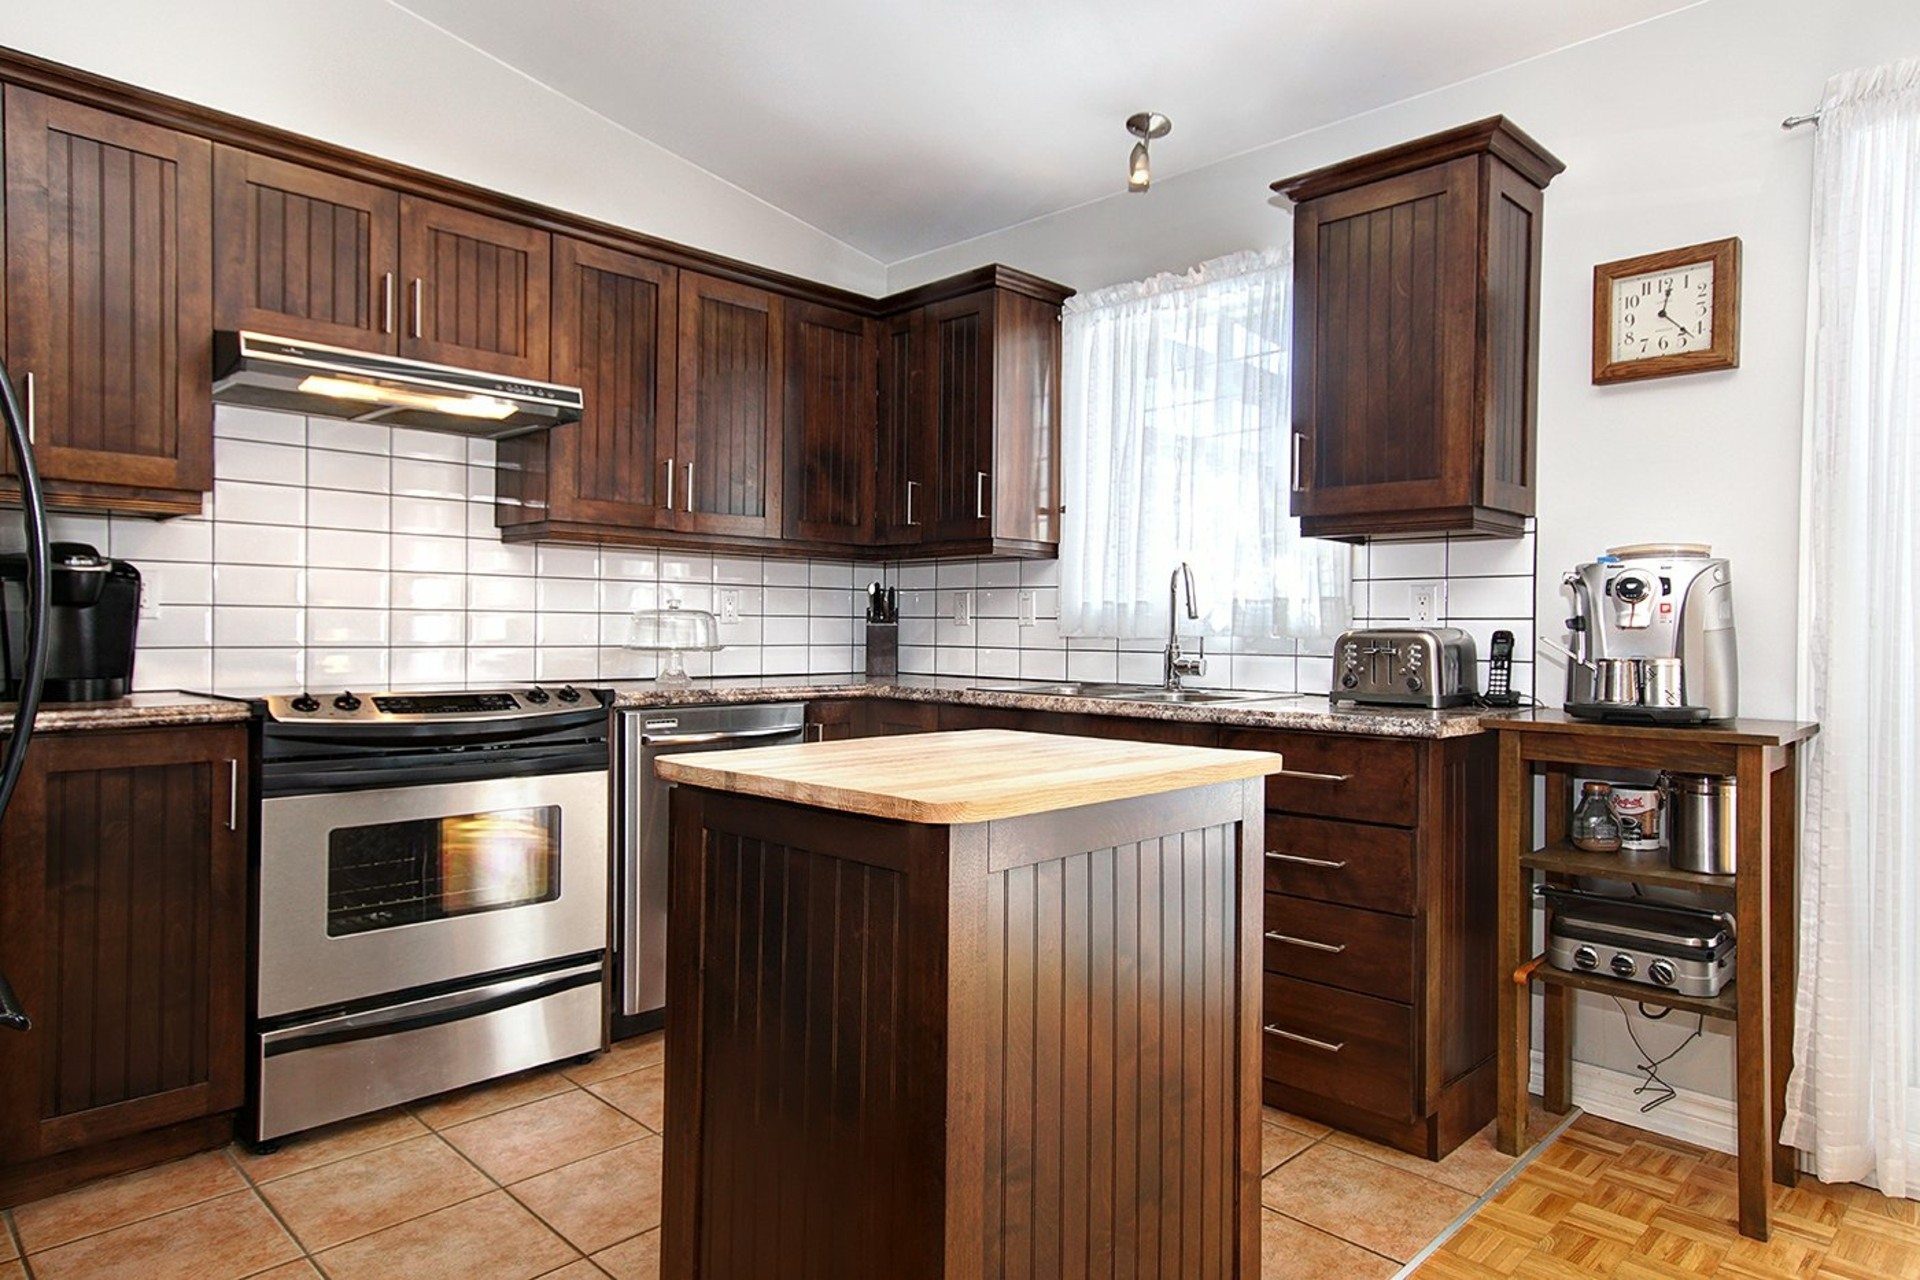 image 11 - House For sale Repentigny Repentigny  - 10 rooms